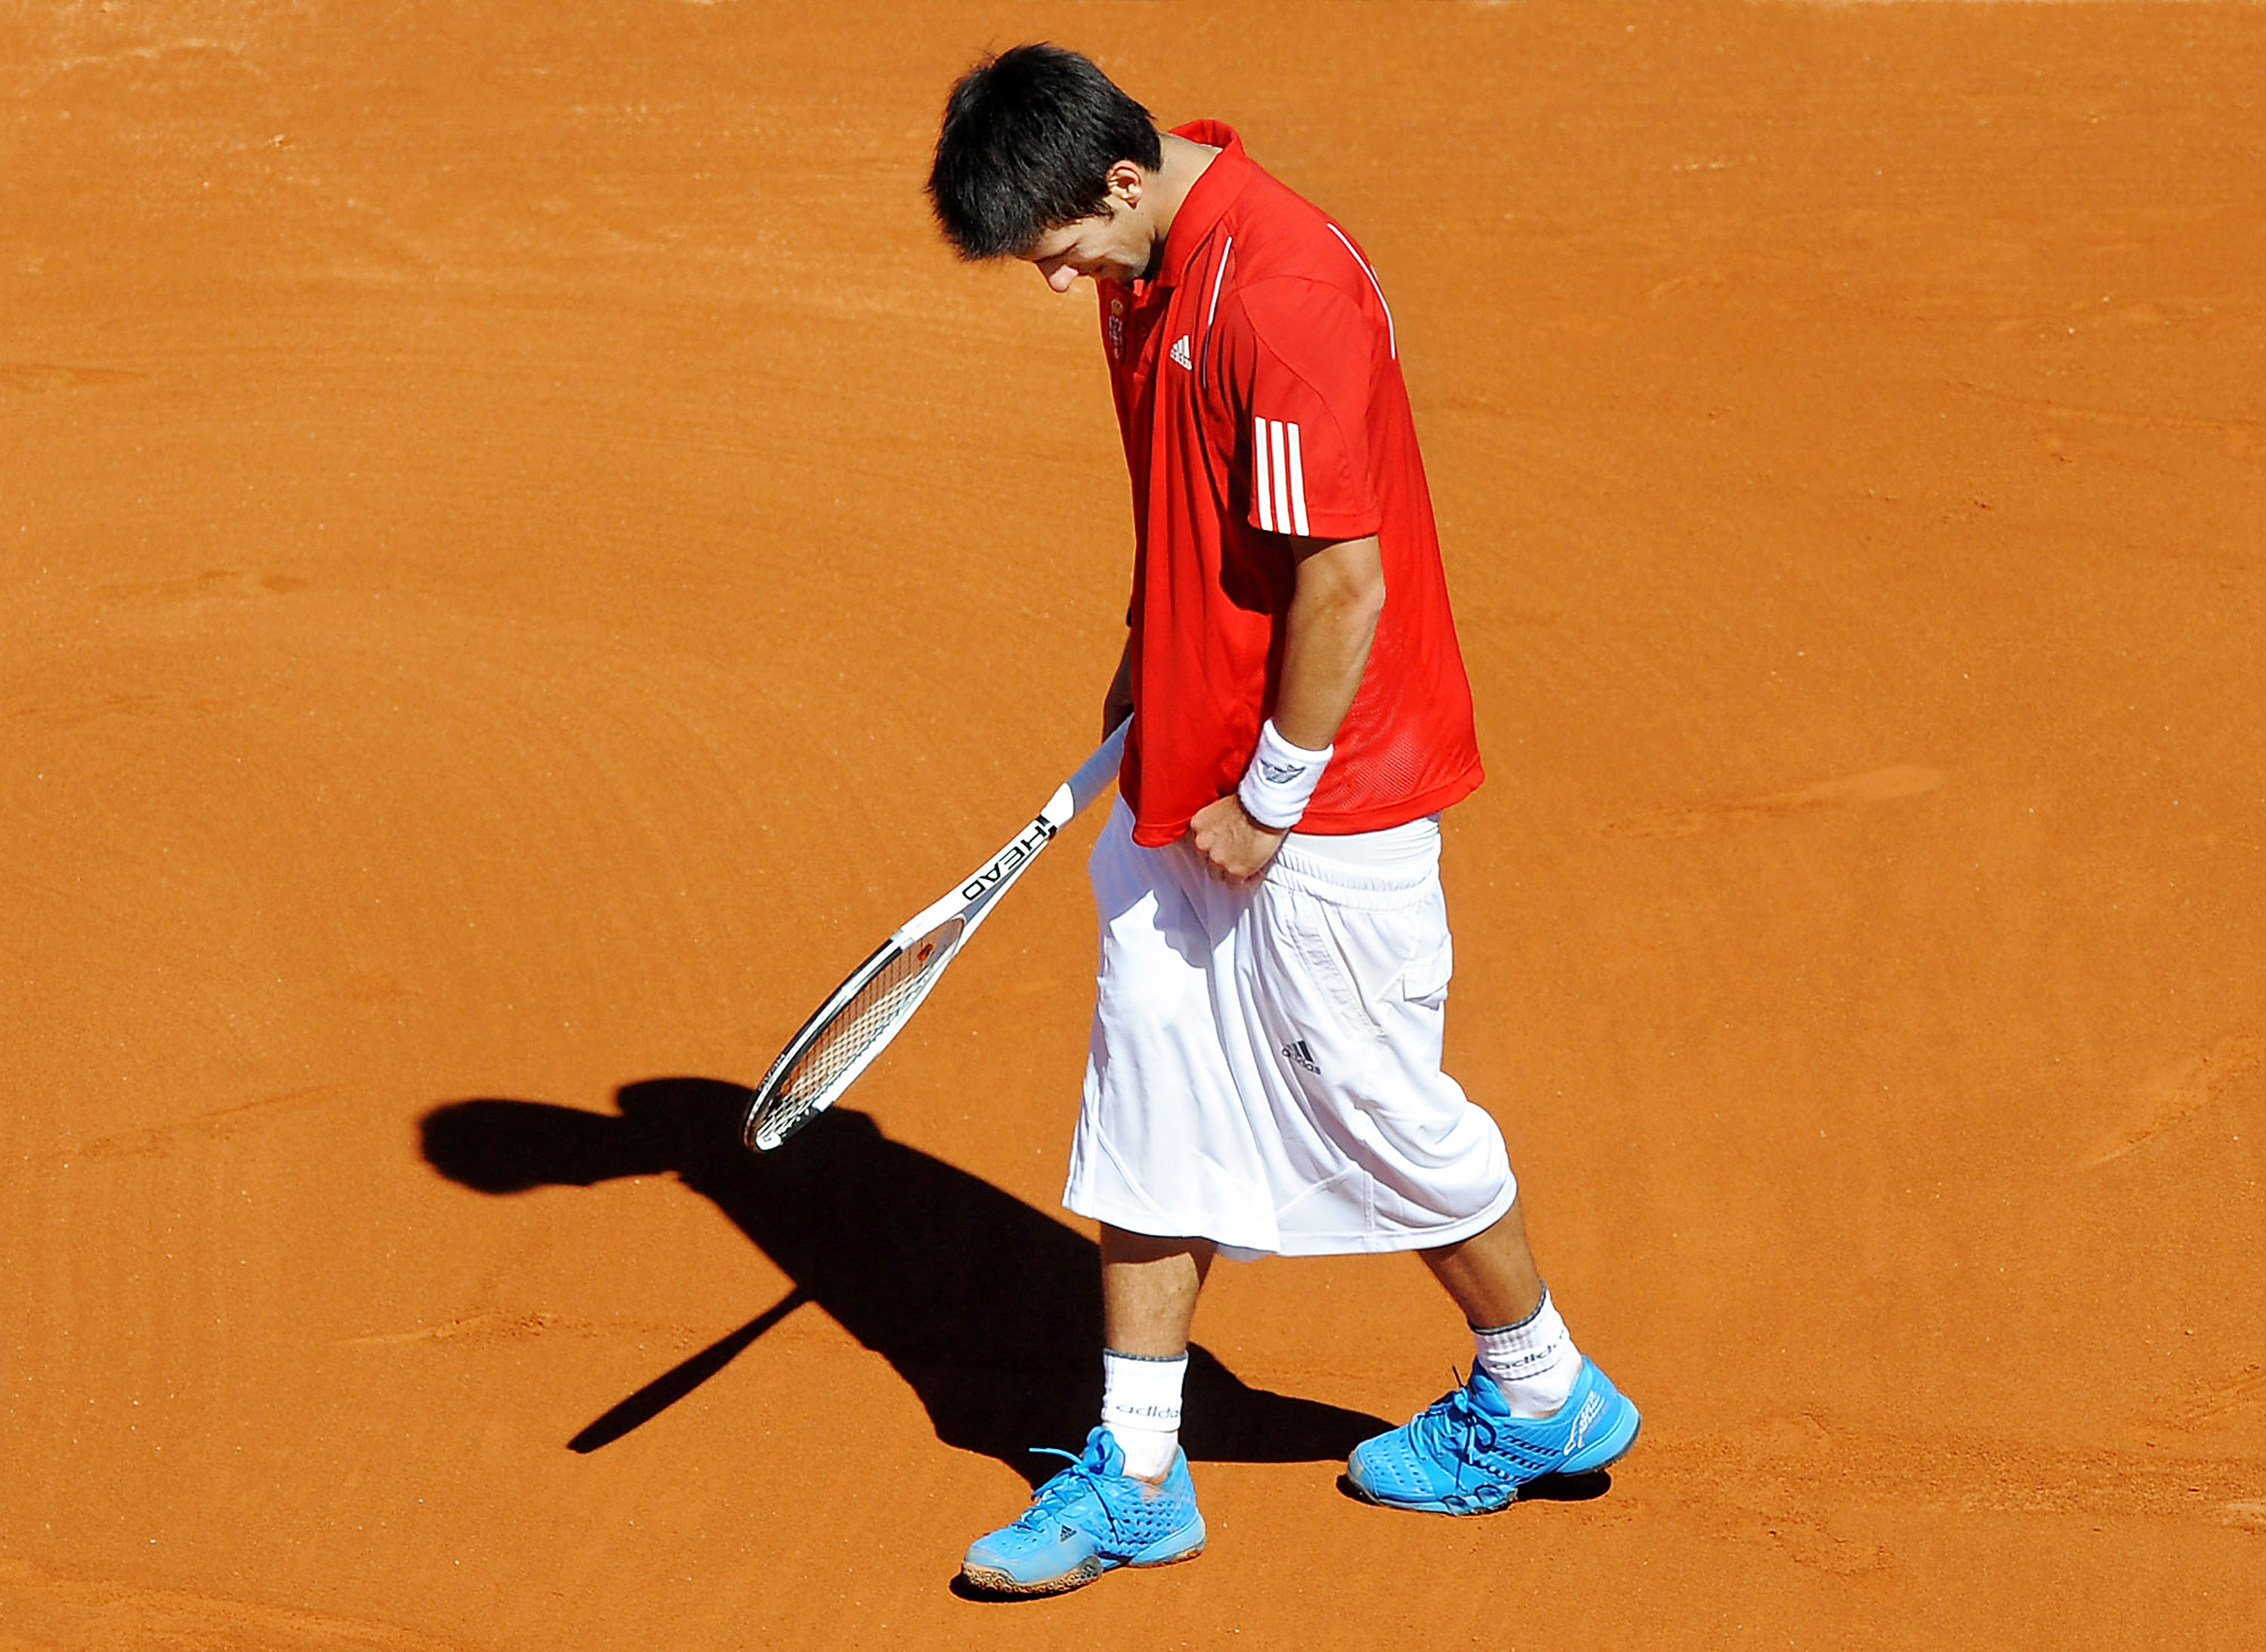 ...The shorts almost falling off? Not so much. Davis Cup will do this to you.